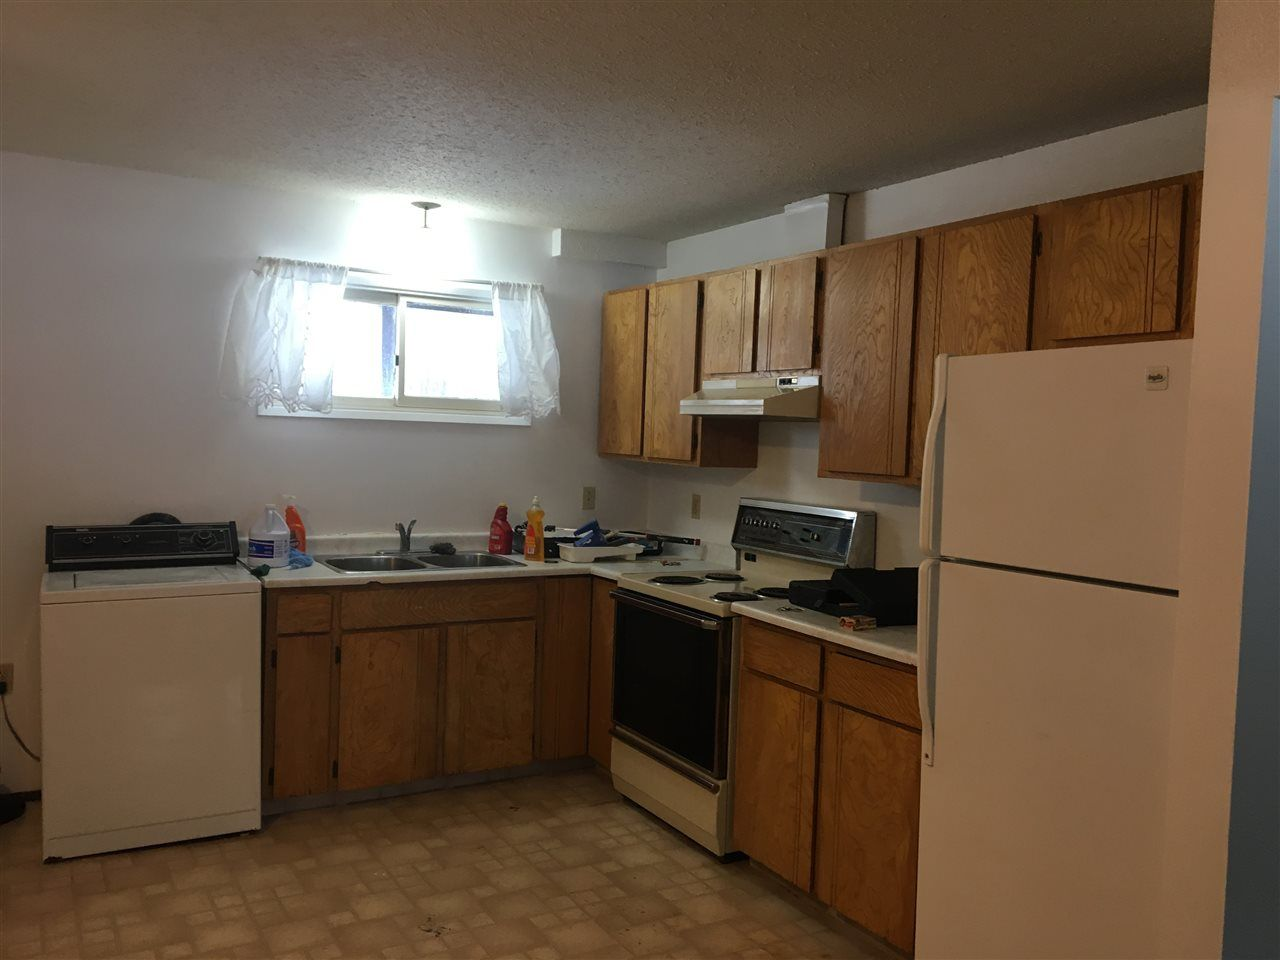 Photo 15: Photos: 160 BETTCHER Street in Quesnel: Quesnel - Town House for sale (Quesnel (Zone 28))  : MLS®# R2337127